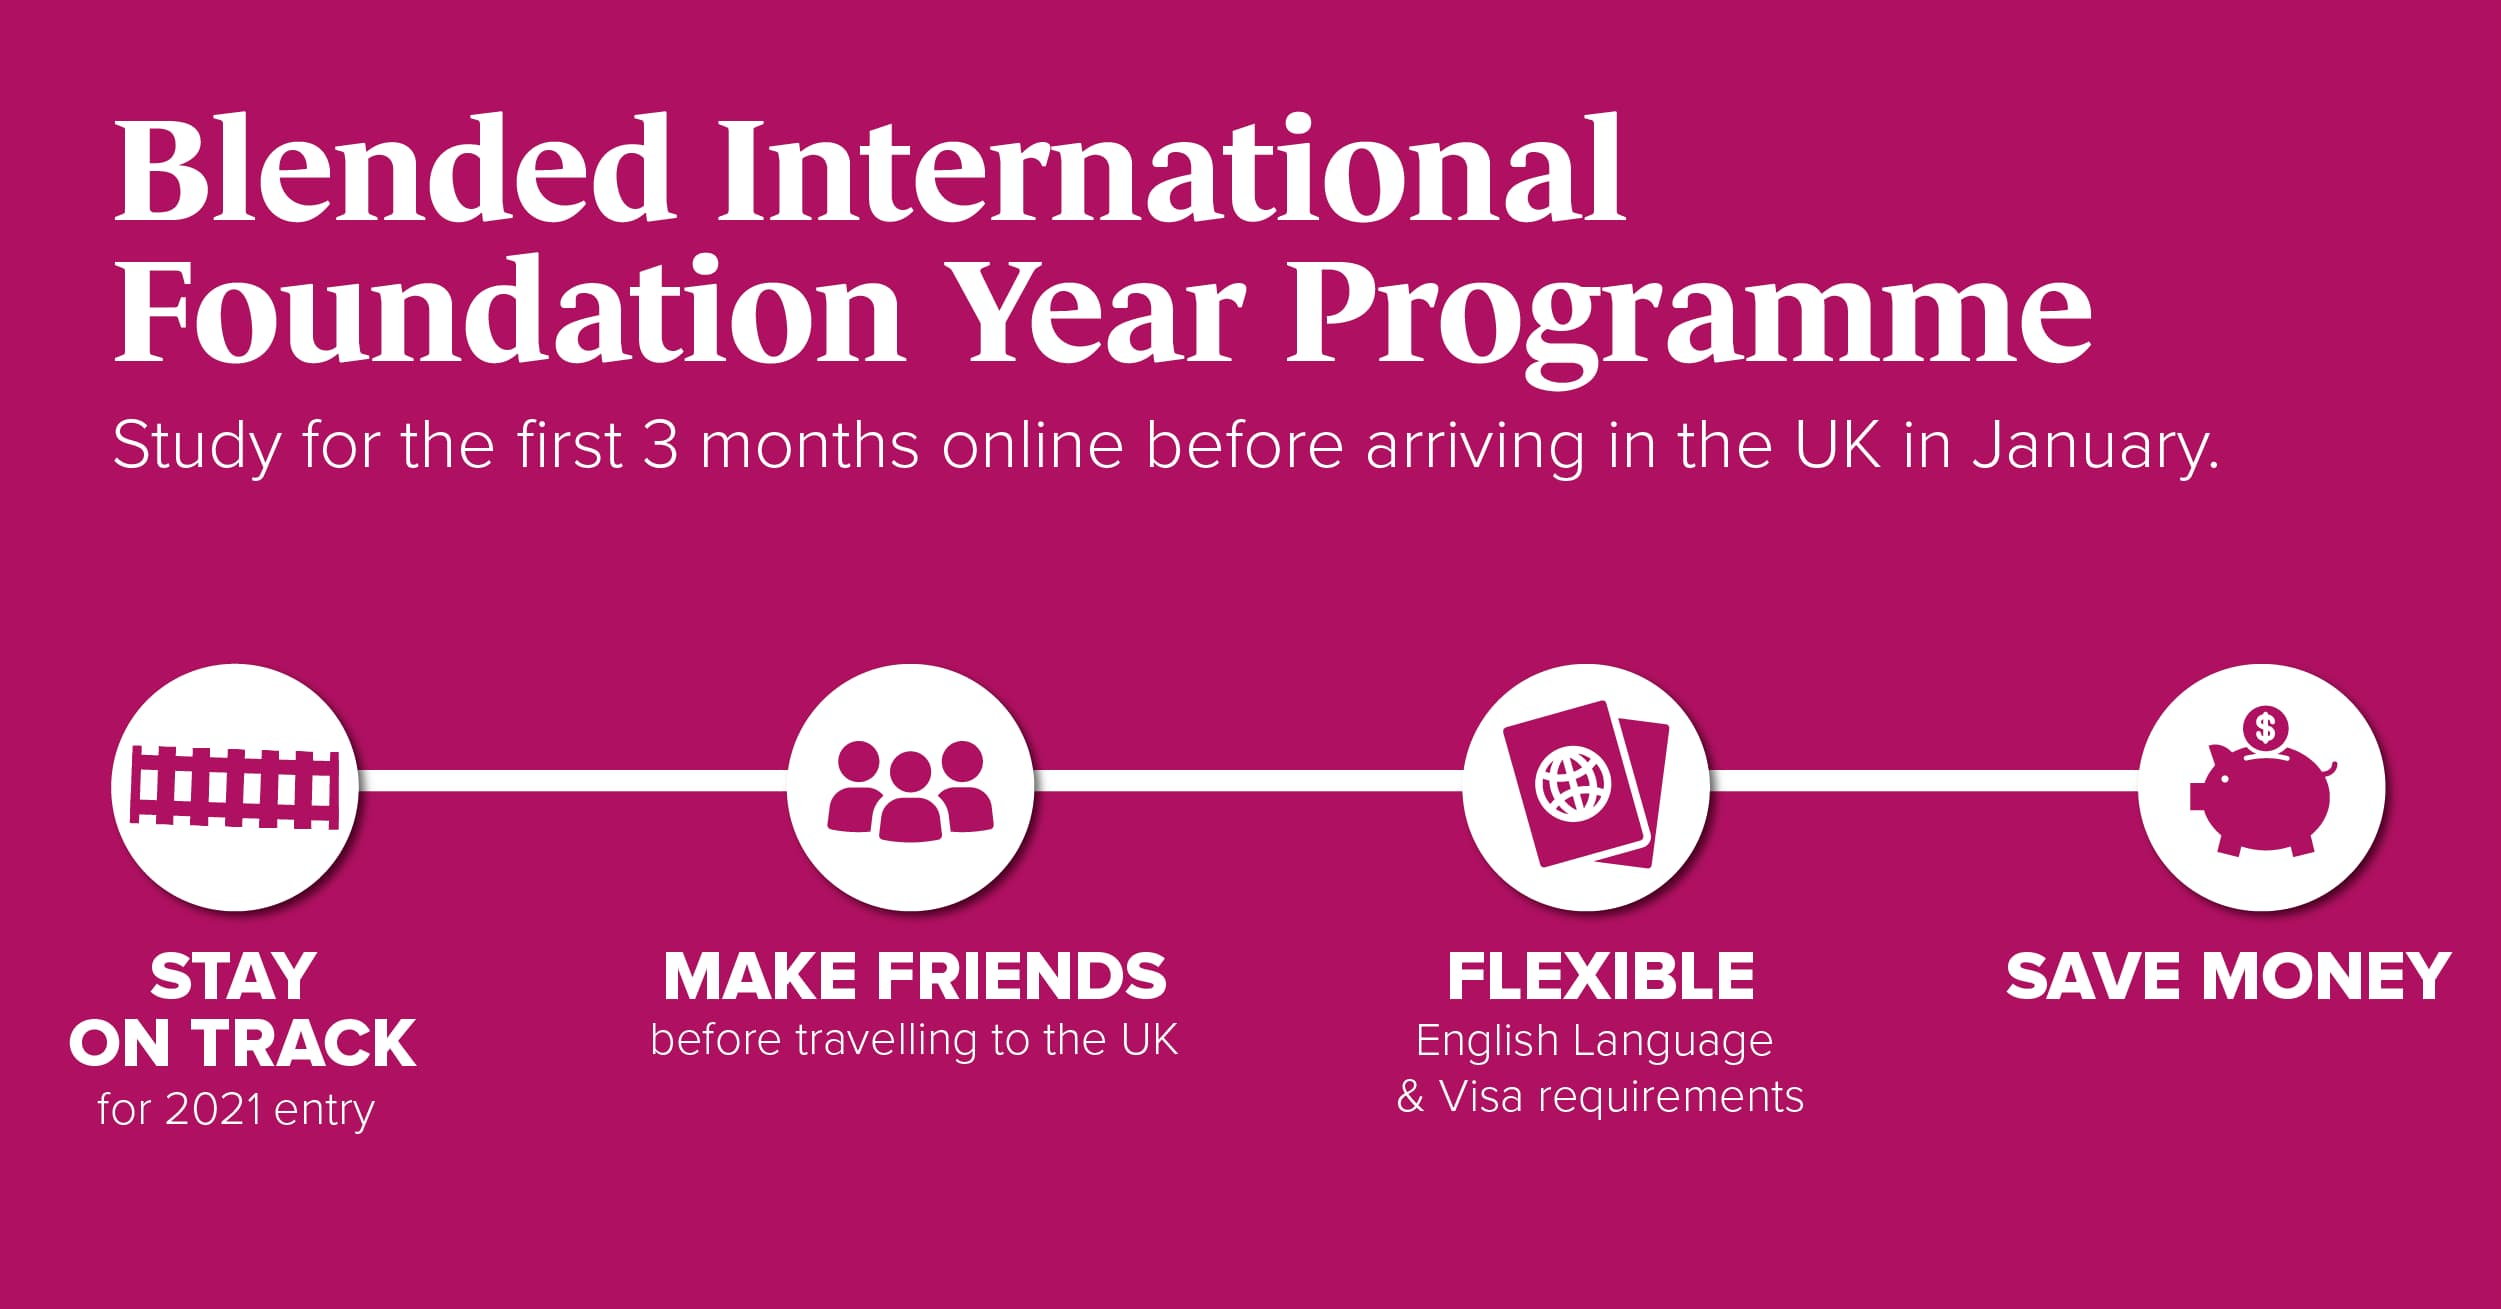 Purple infographic explaining course info: •	Stay on track for 2021 entry to university •	Make friends before travelling to the UK in their online classes •	Have a greater choice of visa options •	Save money on accommodation